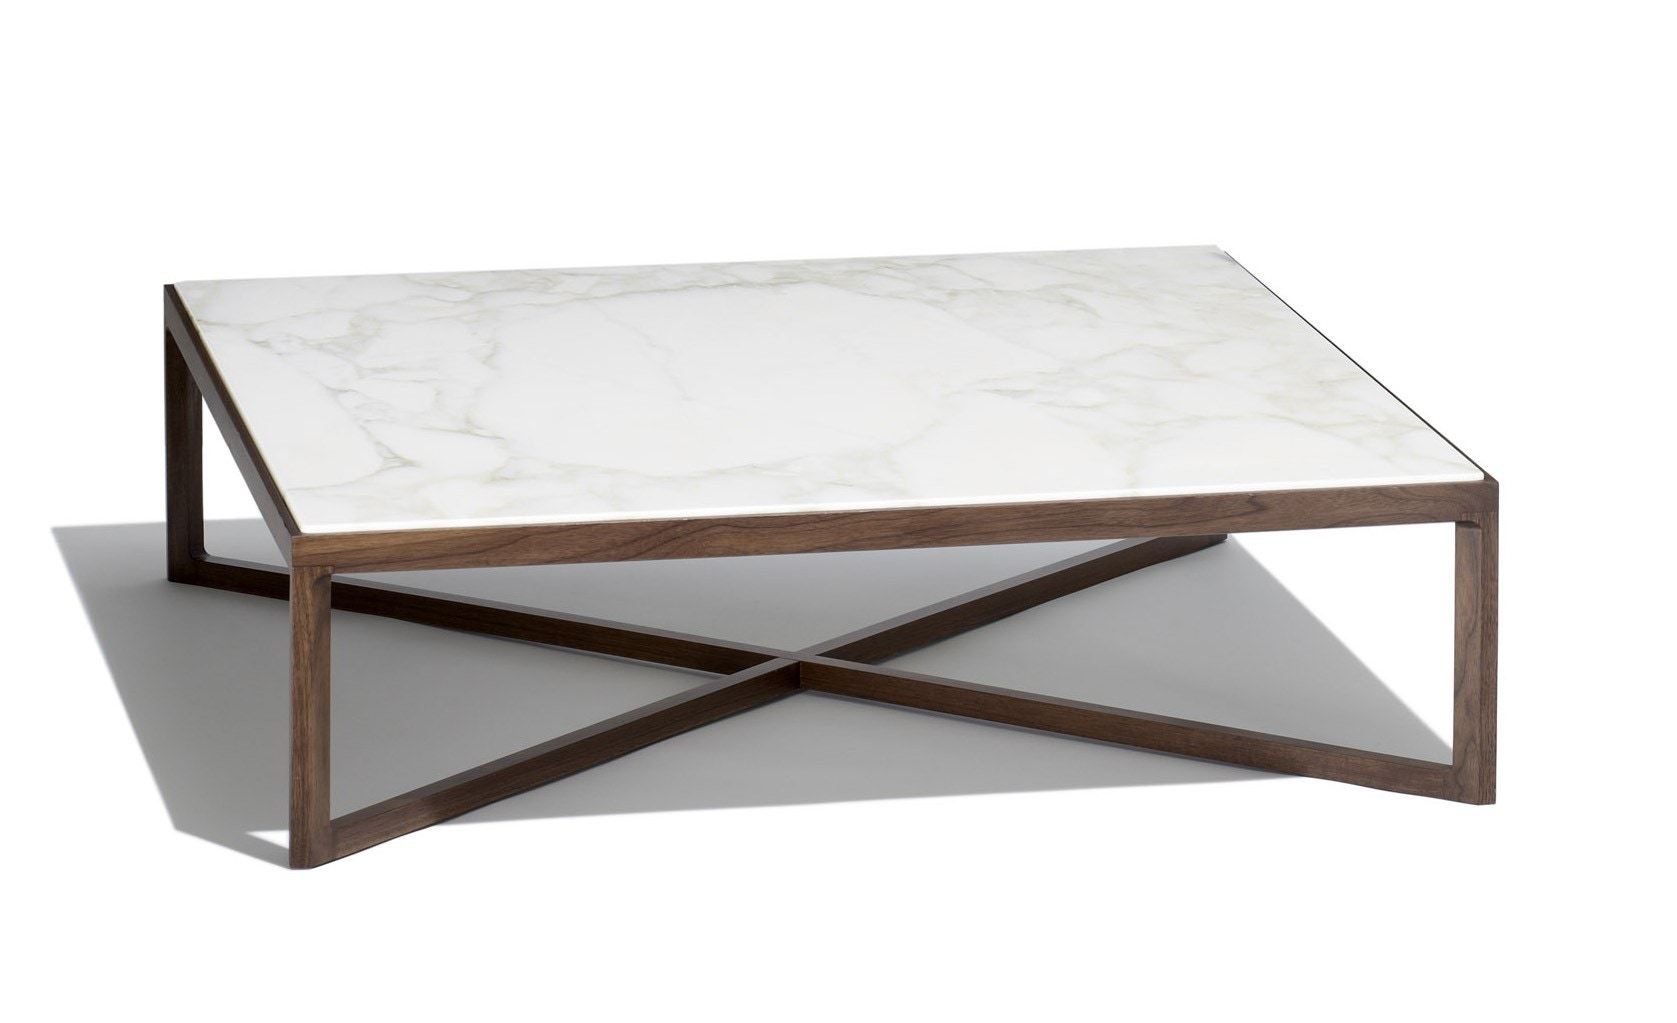 Knoll Marc Krusin Occasional Rectangular Coffee Table - 40 x 24 inch